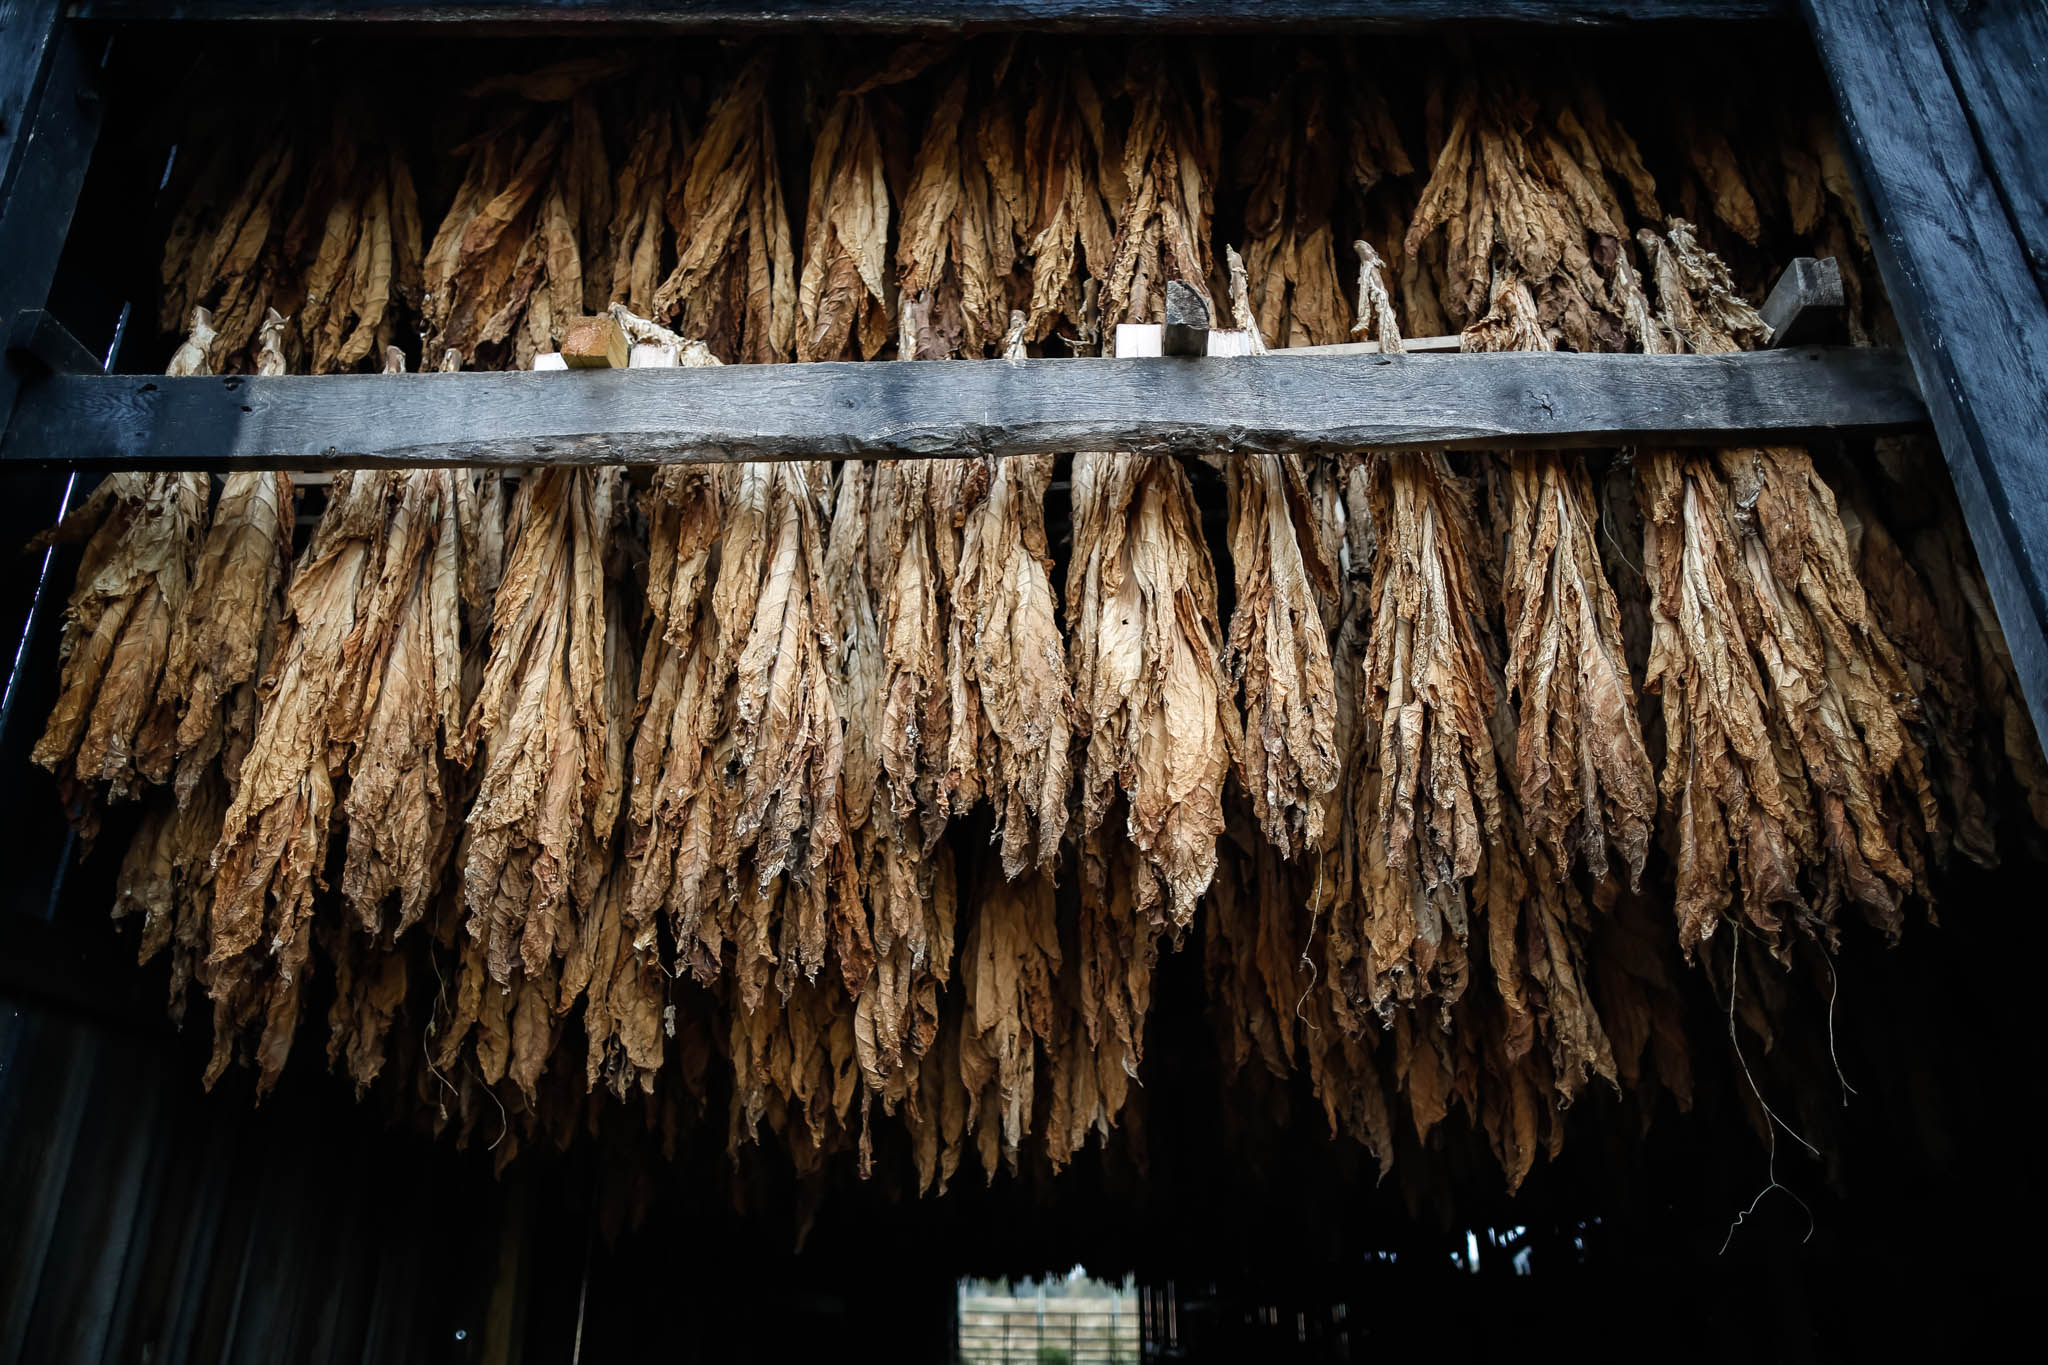 Tobacco stalks are hung upside down in the rafters of the barn to reduce moisture after harvesting.